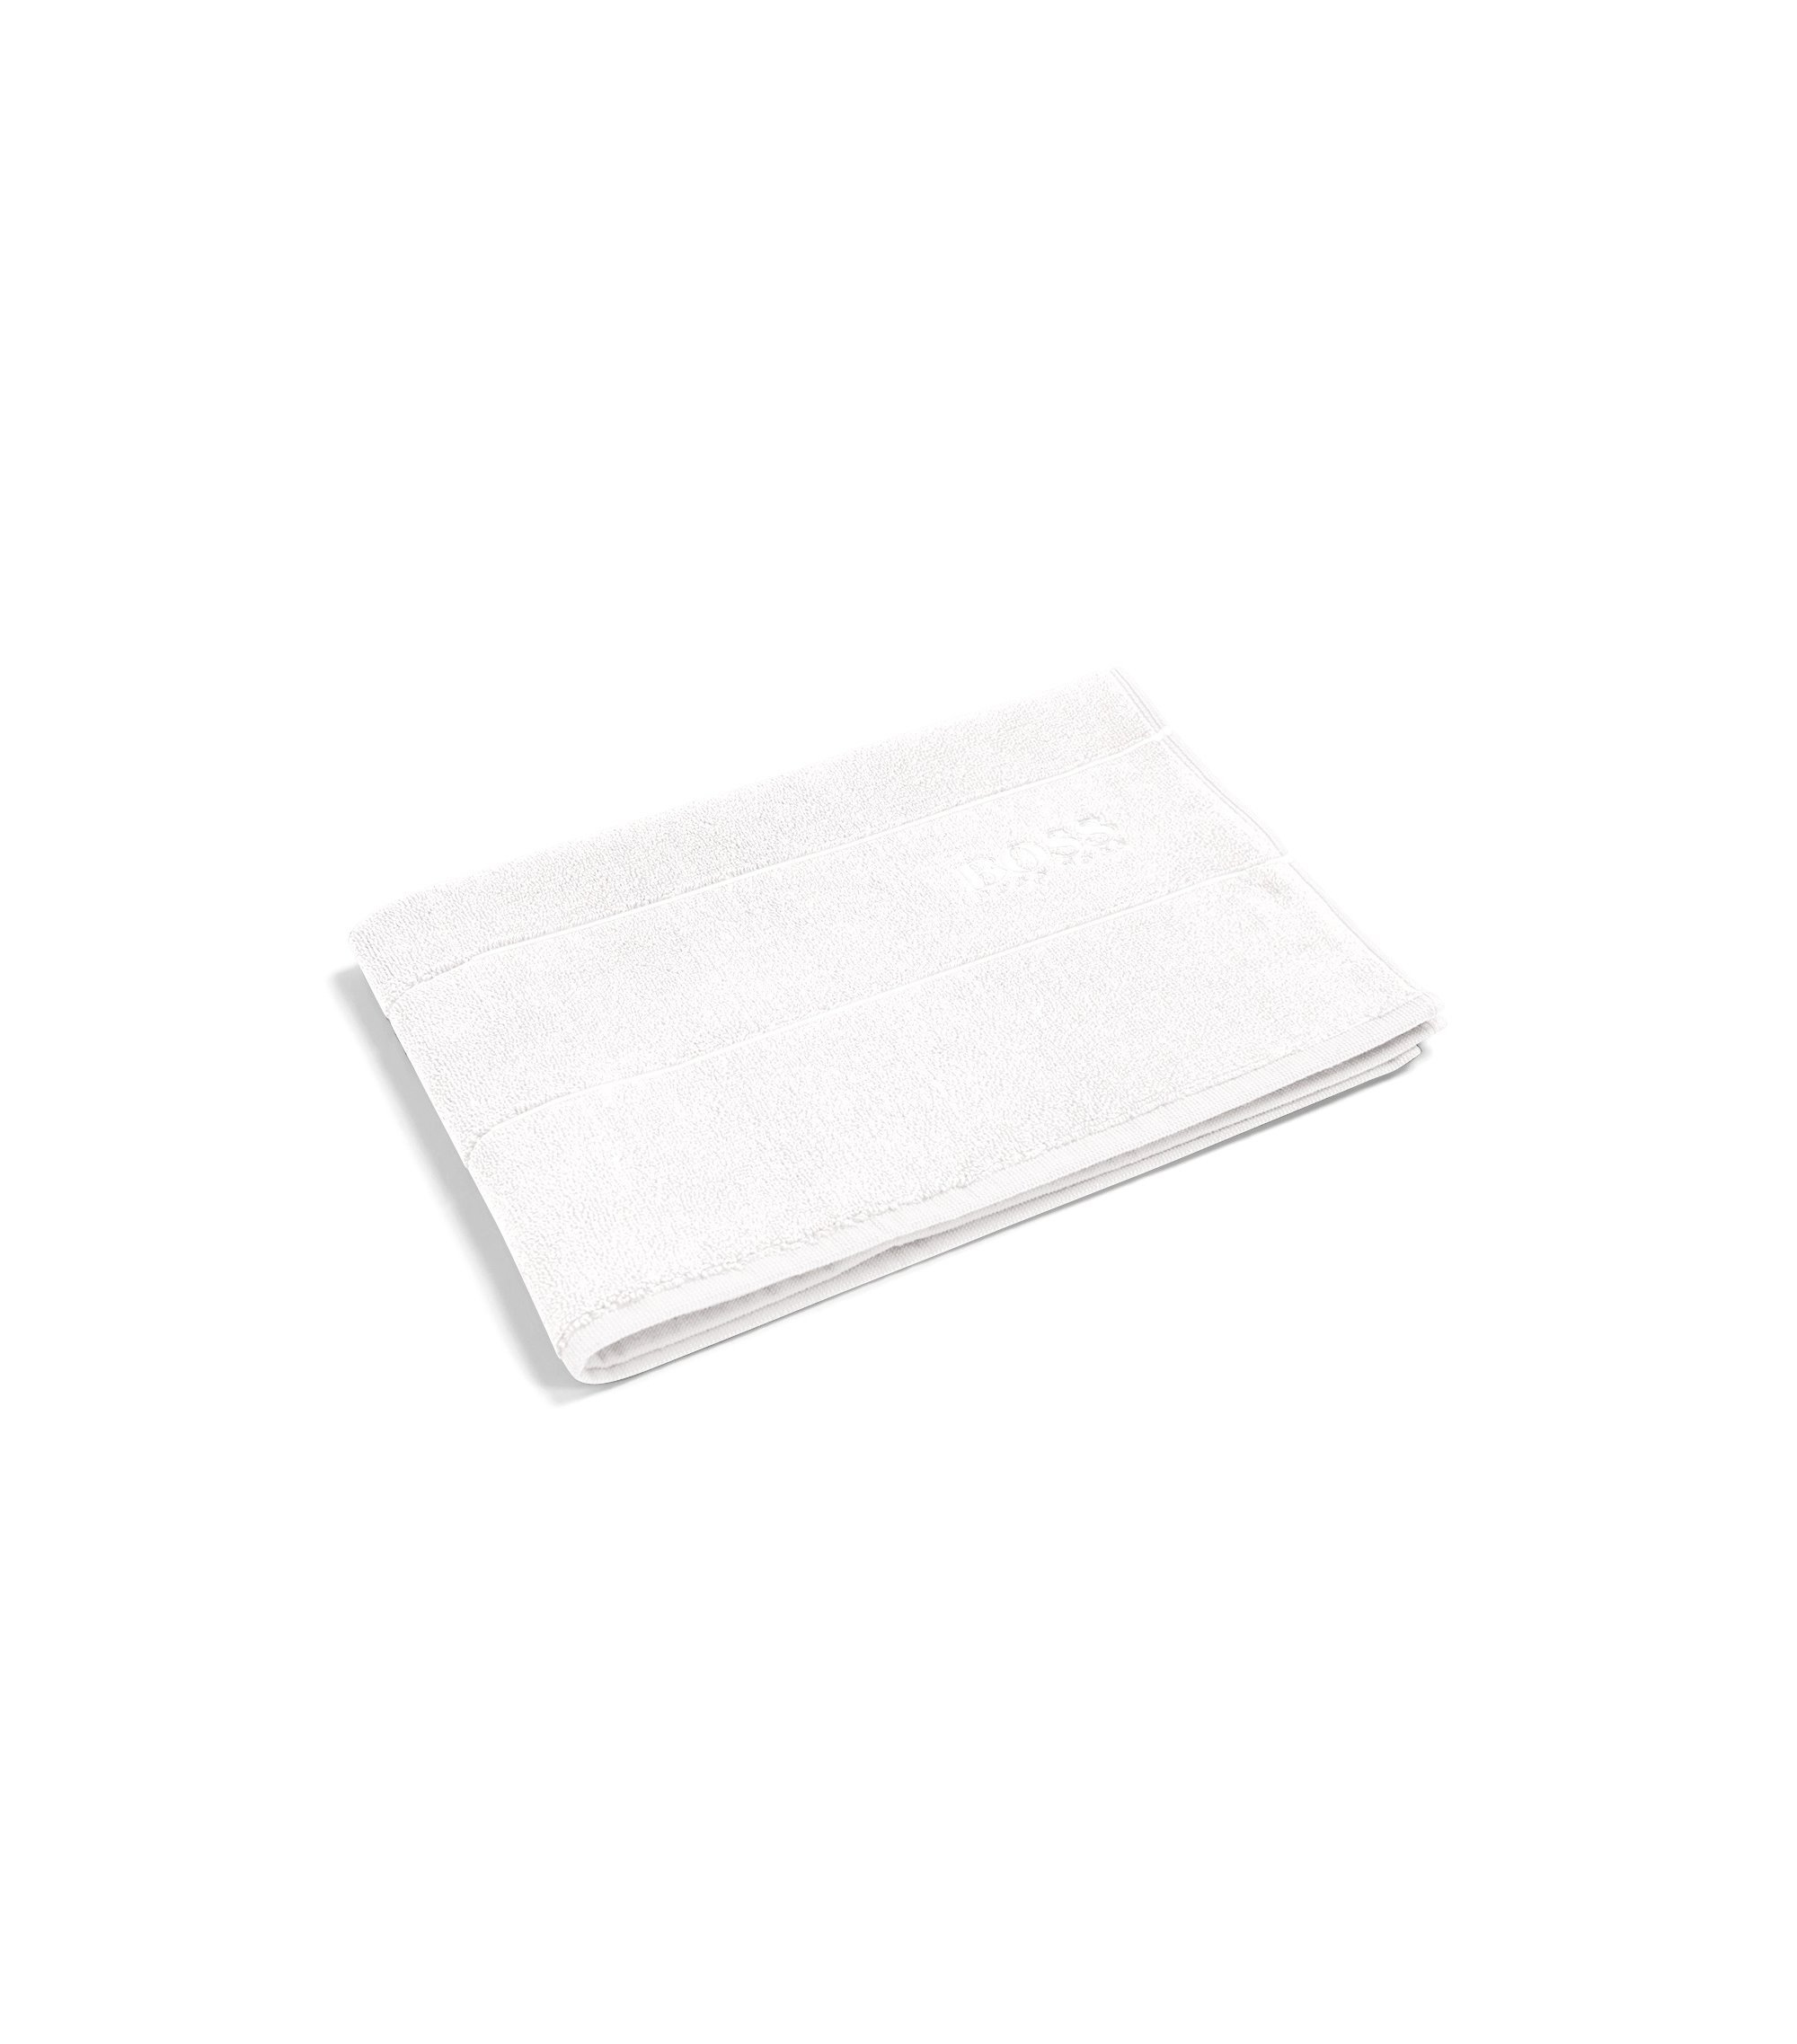 Finest Egyptian cotton bath mat with logo border, White